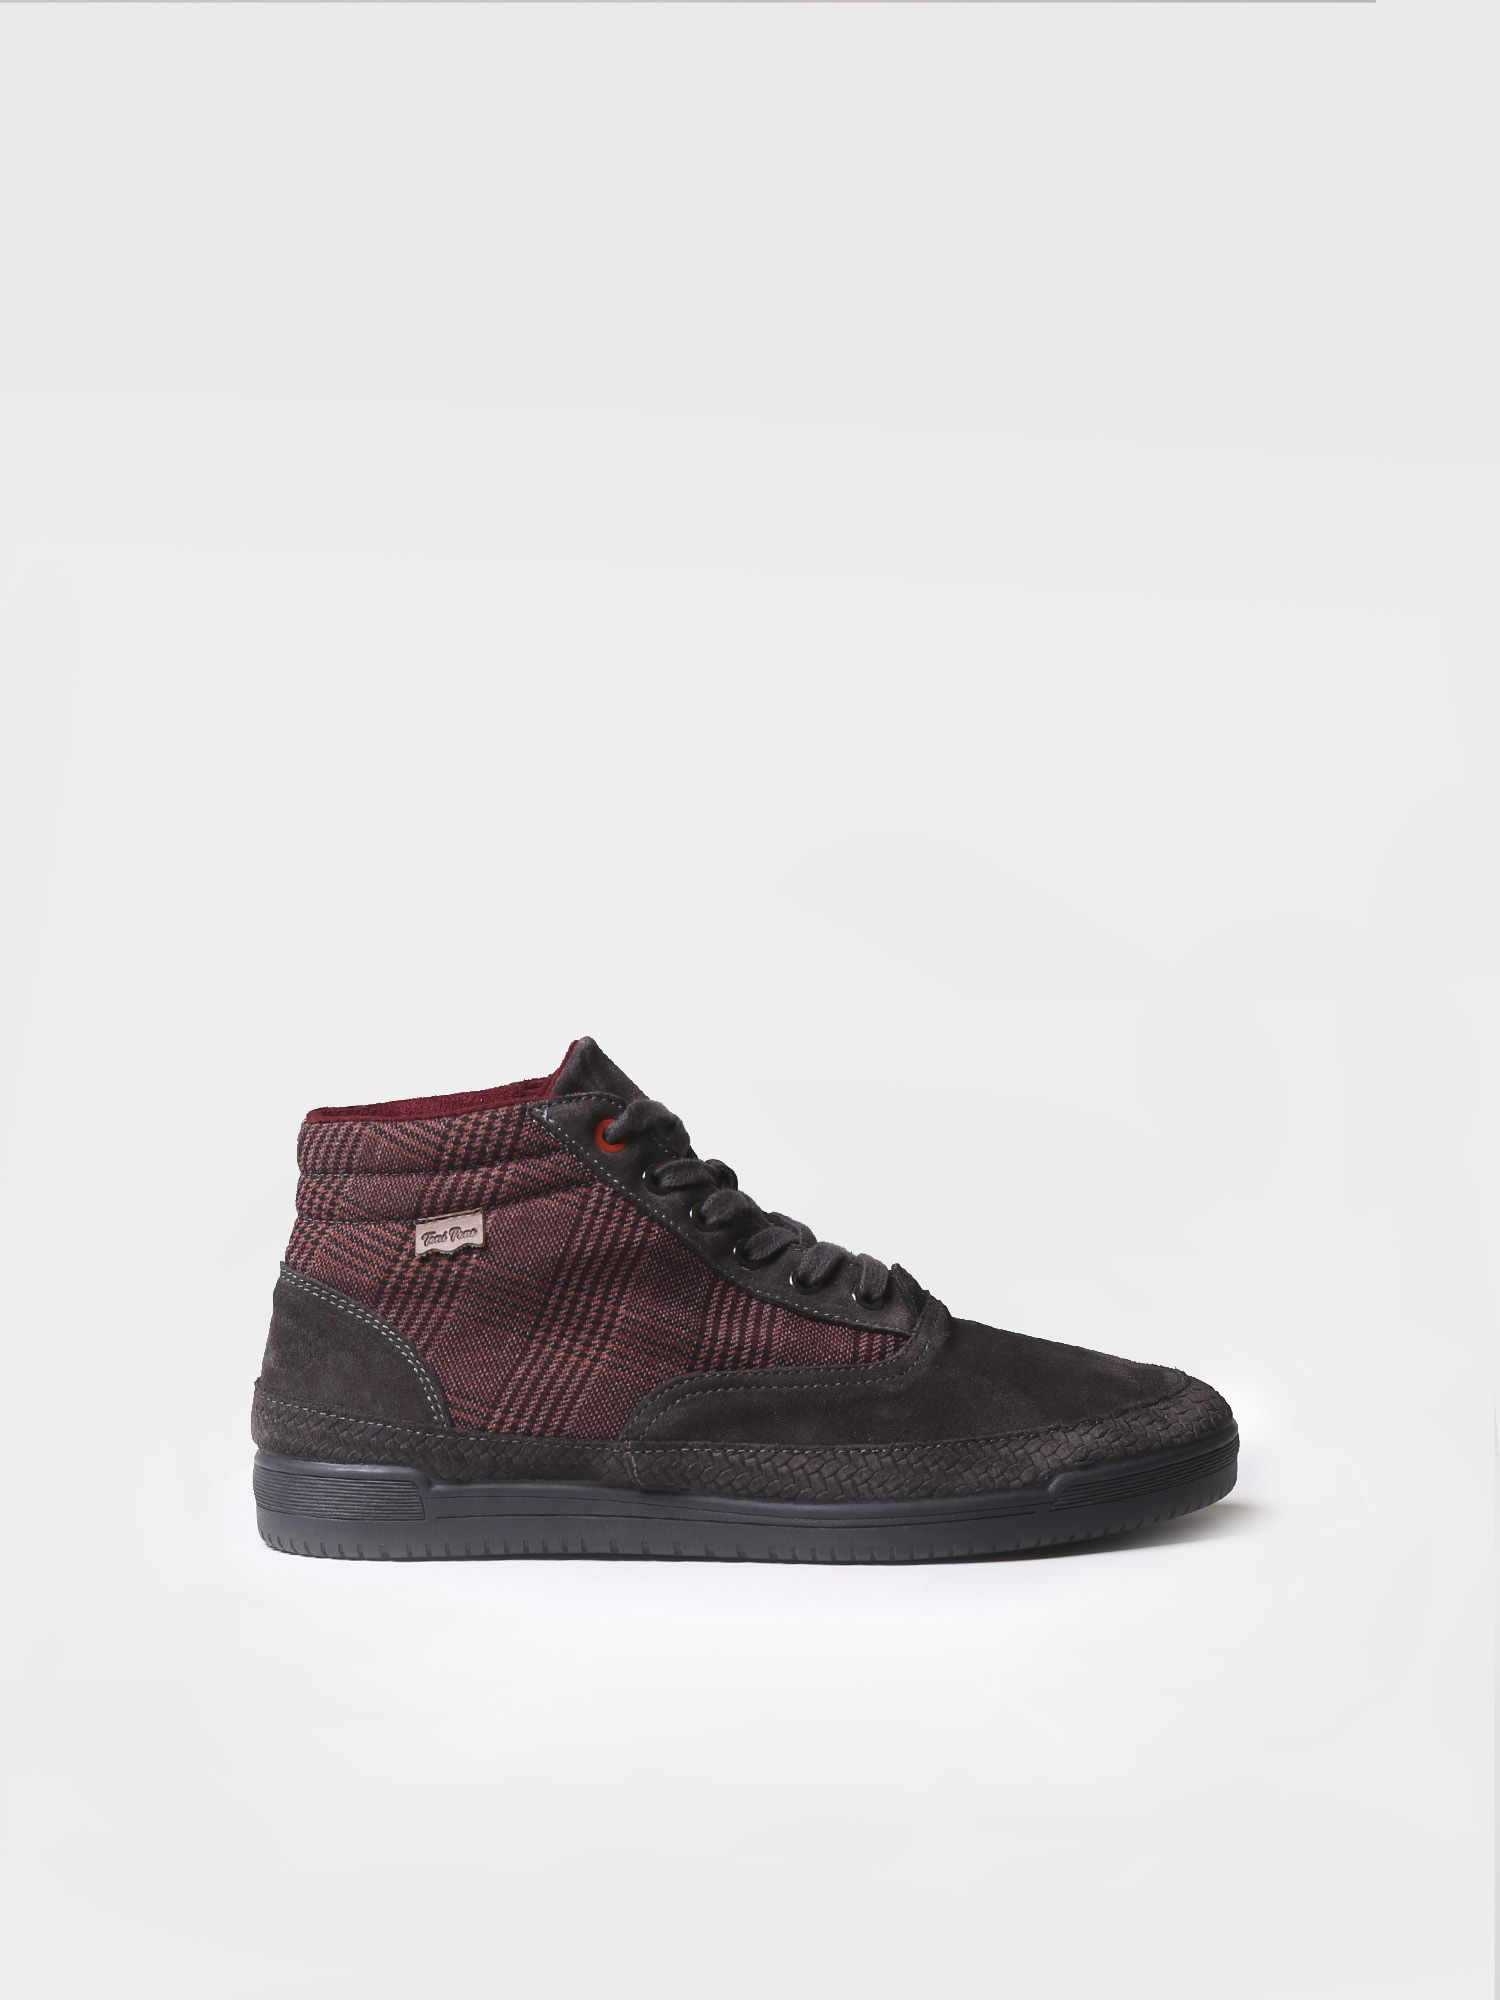 Sneaker for men made of cotton and suede - GUS-CA